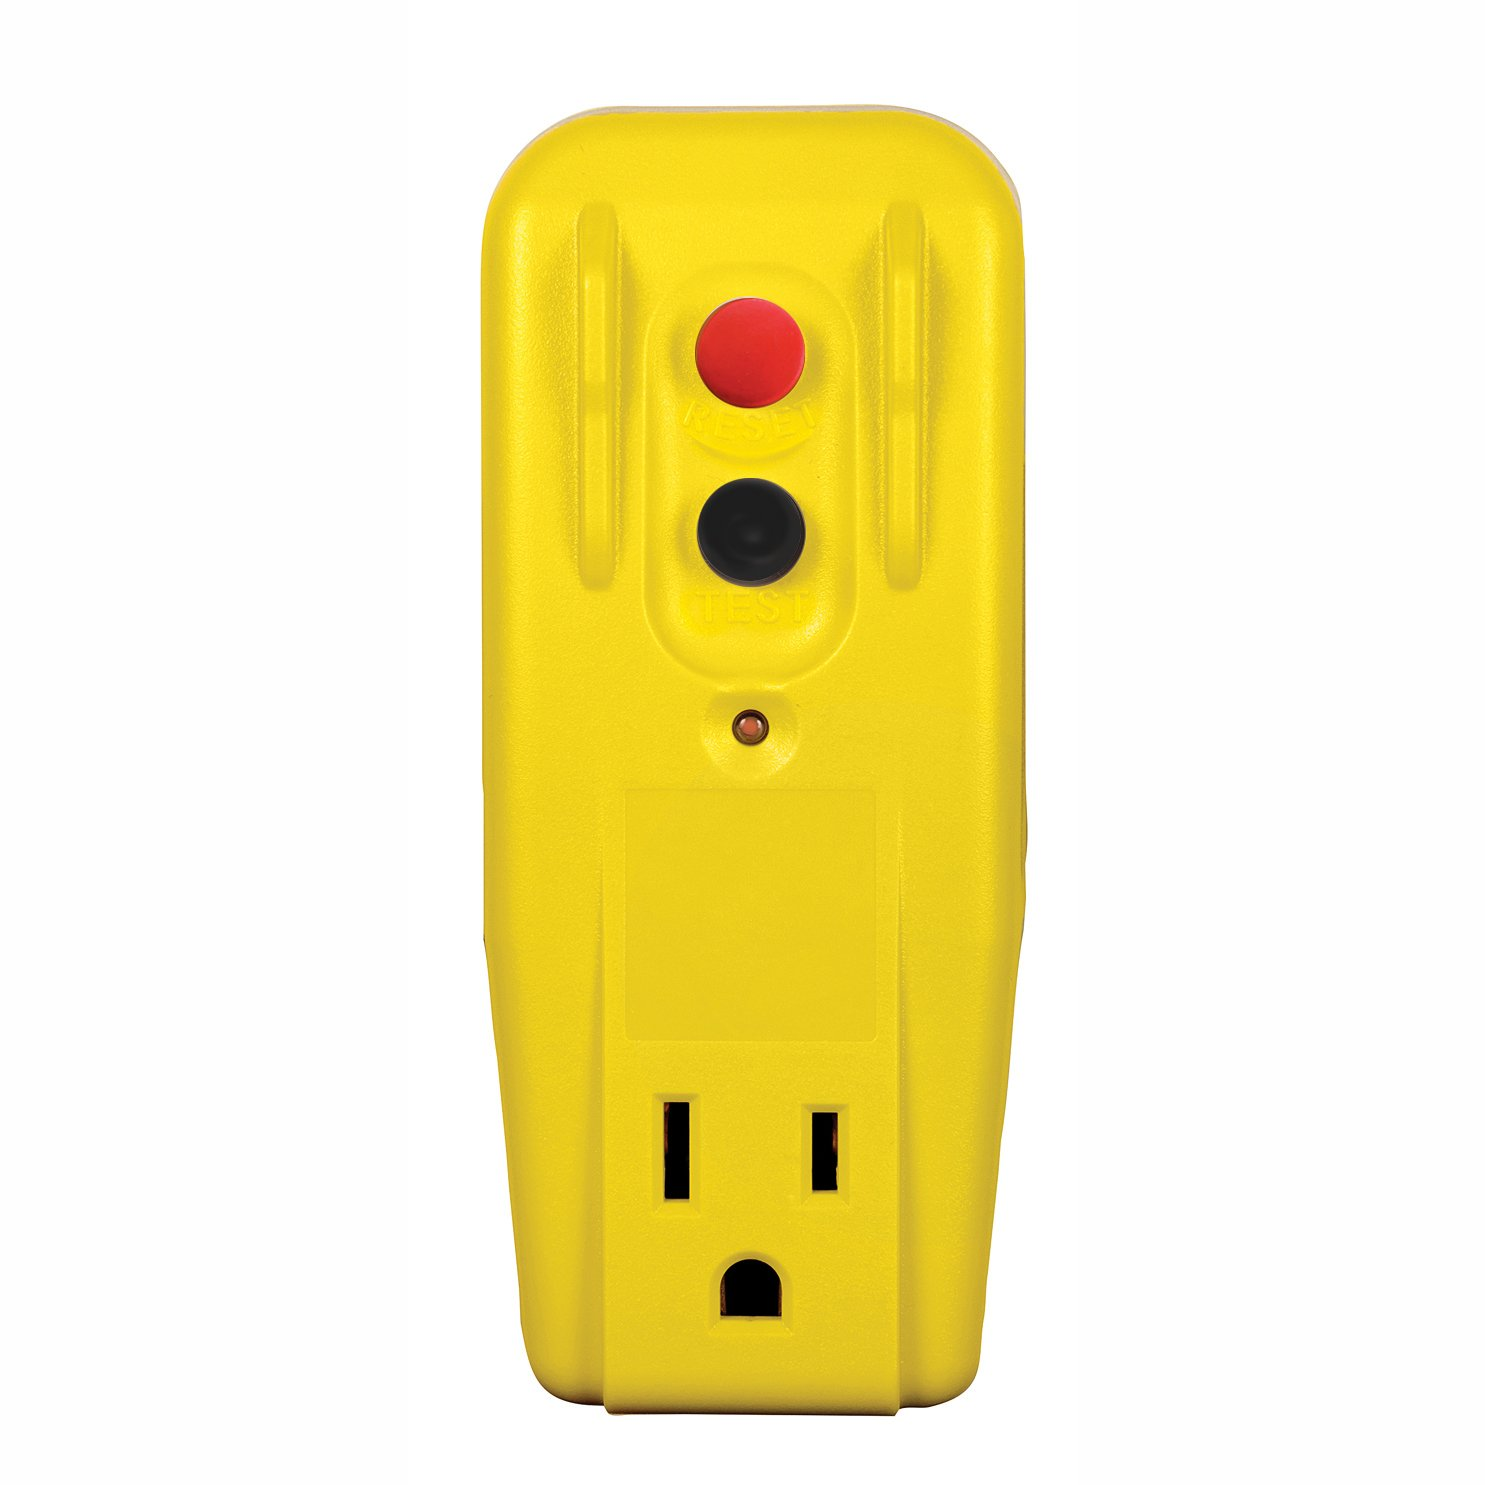 Tower Manufacturing 30340001 Heavy Duty Commercial Grade 15 Amp Auto Portable Ground Fault Circuit Interrupter W Two A Breaker Reset 2 Prong Gfci Single Outlet Adapter Yellow Plug Adapters Industrial